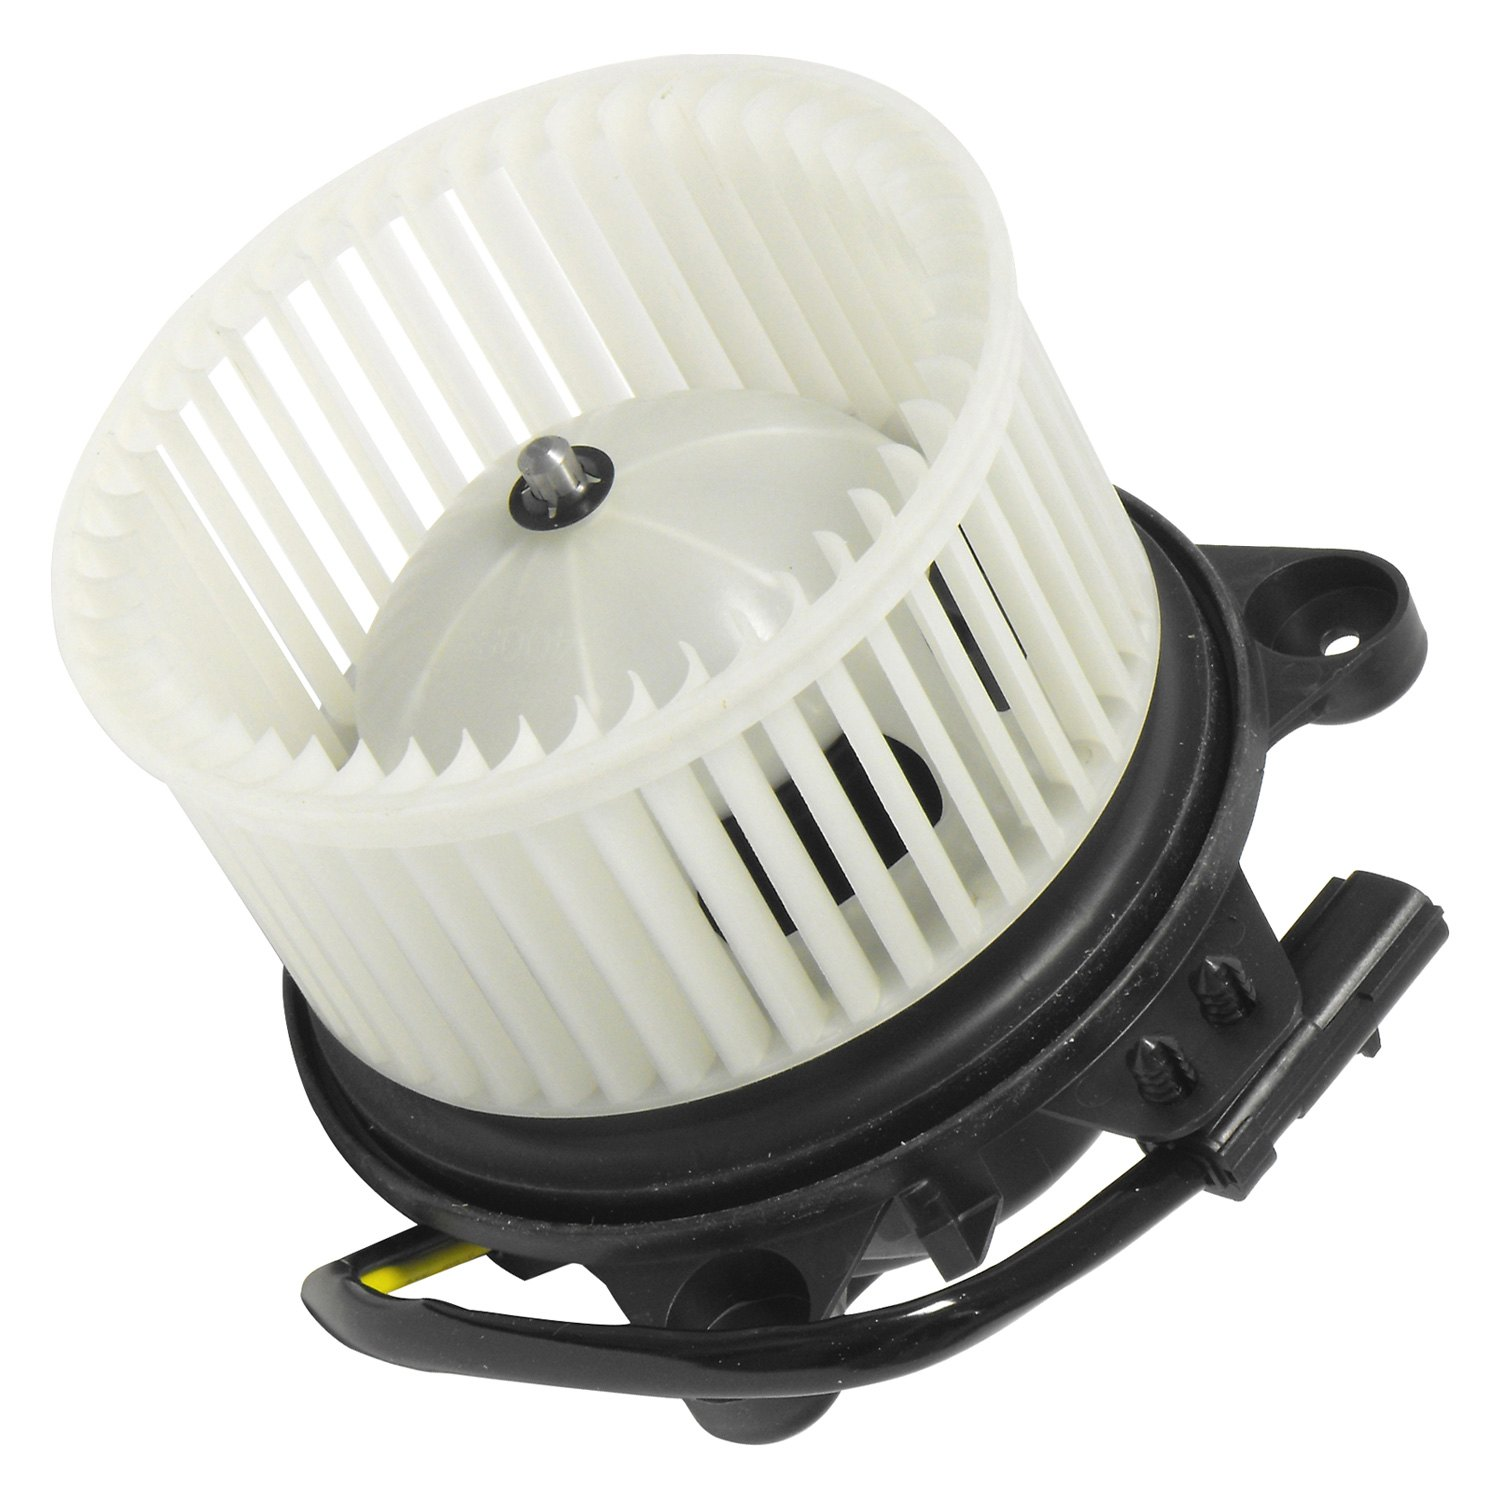 Universal air conditioner bm9200 hvac blower motor for Home ac blower motor